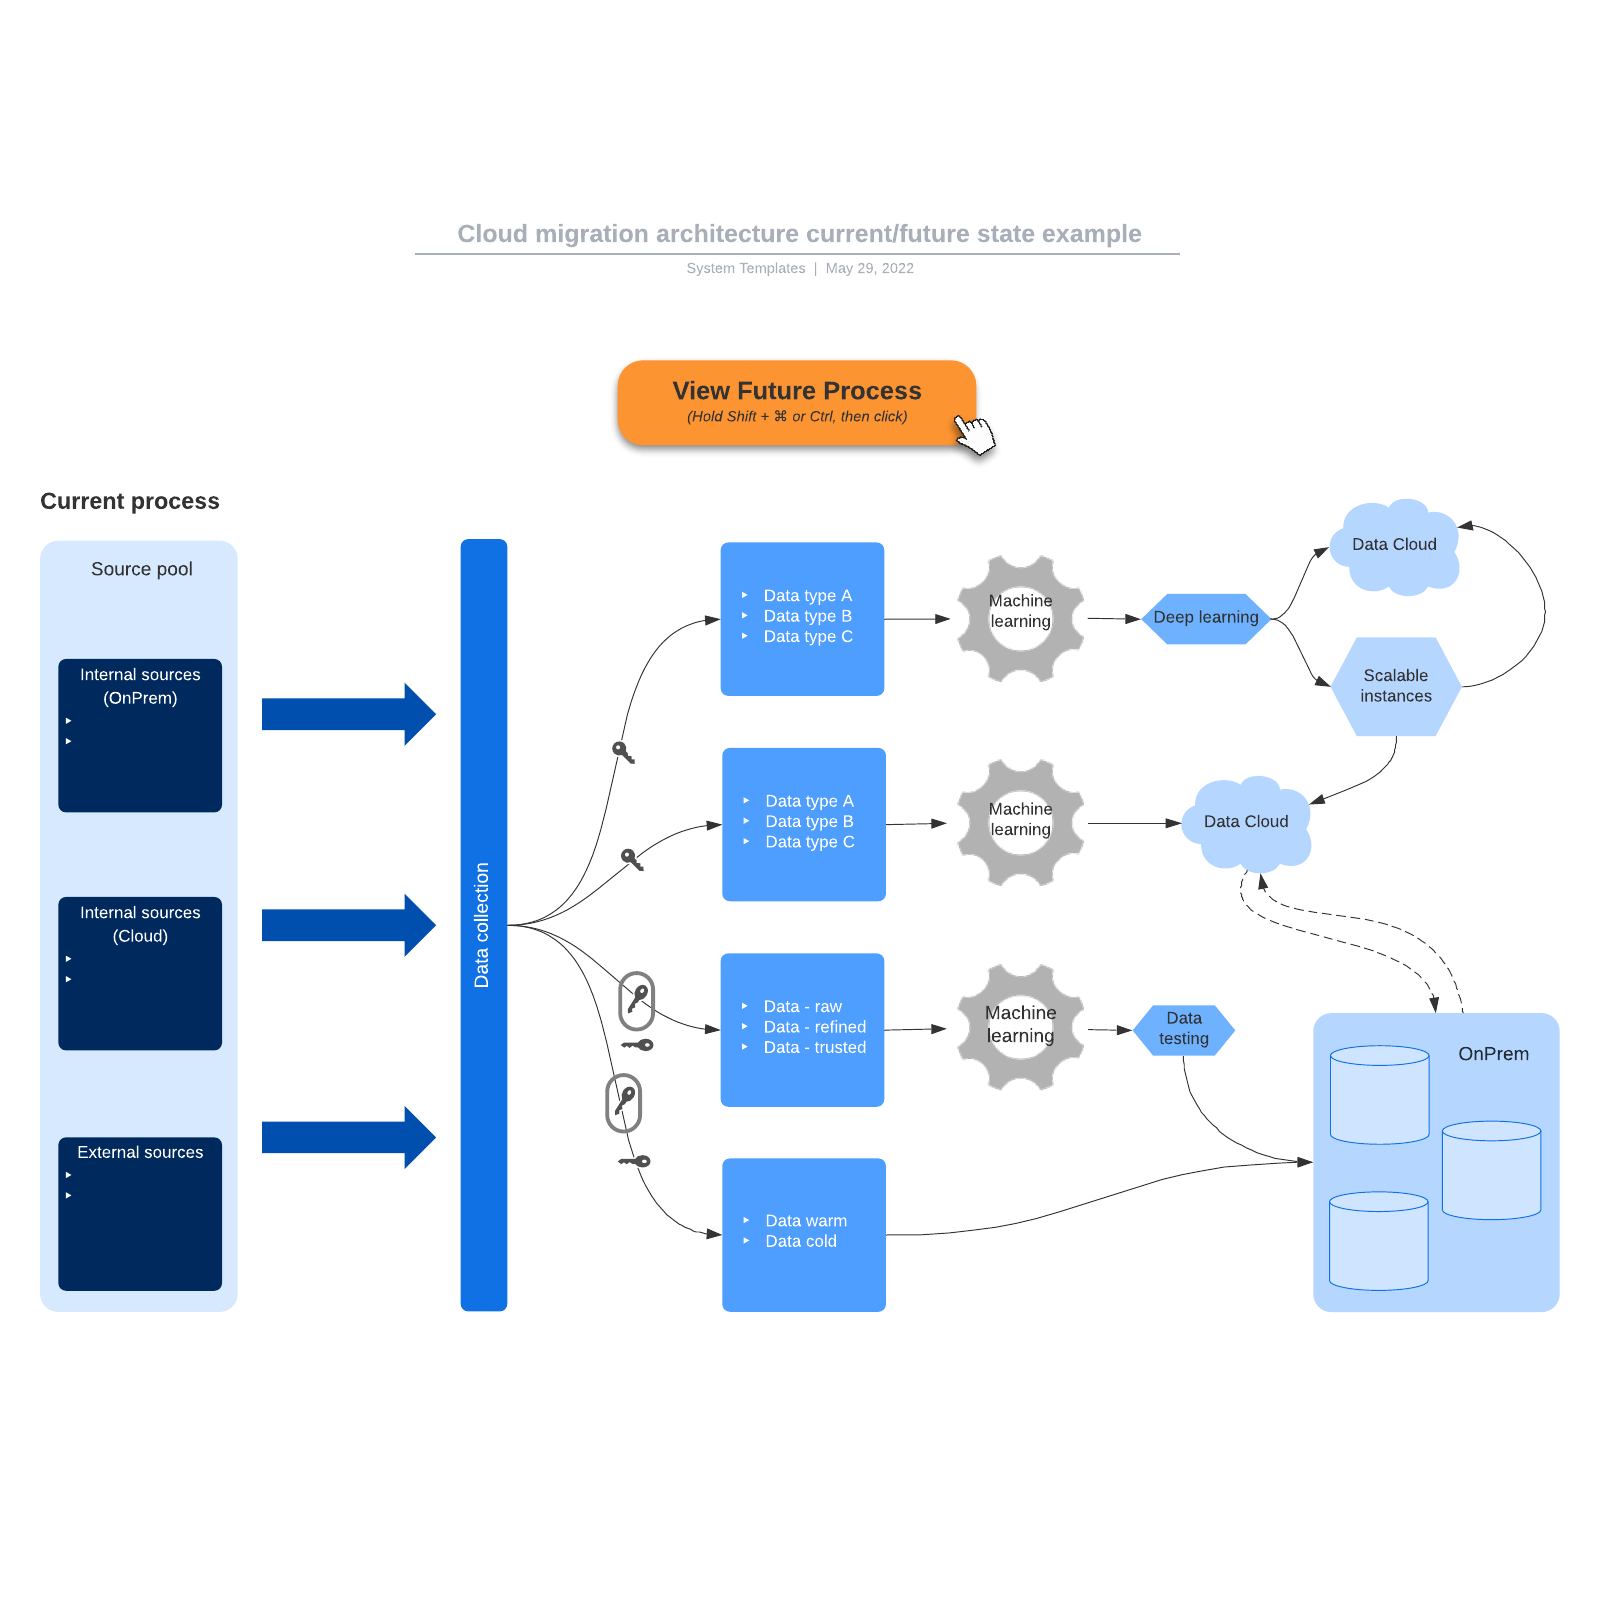 Cloud migration architecture current/future state example